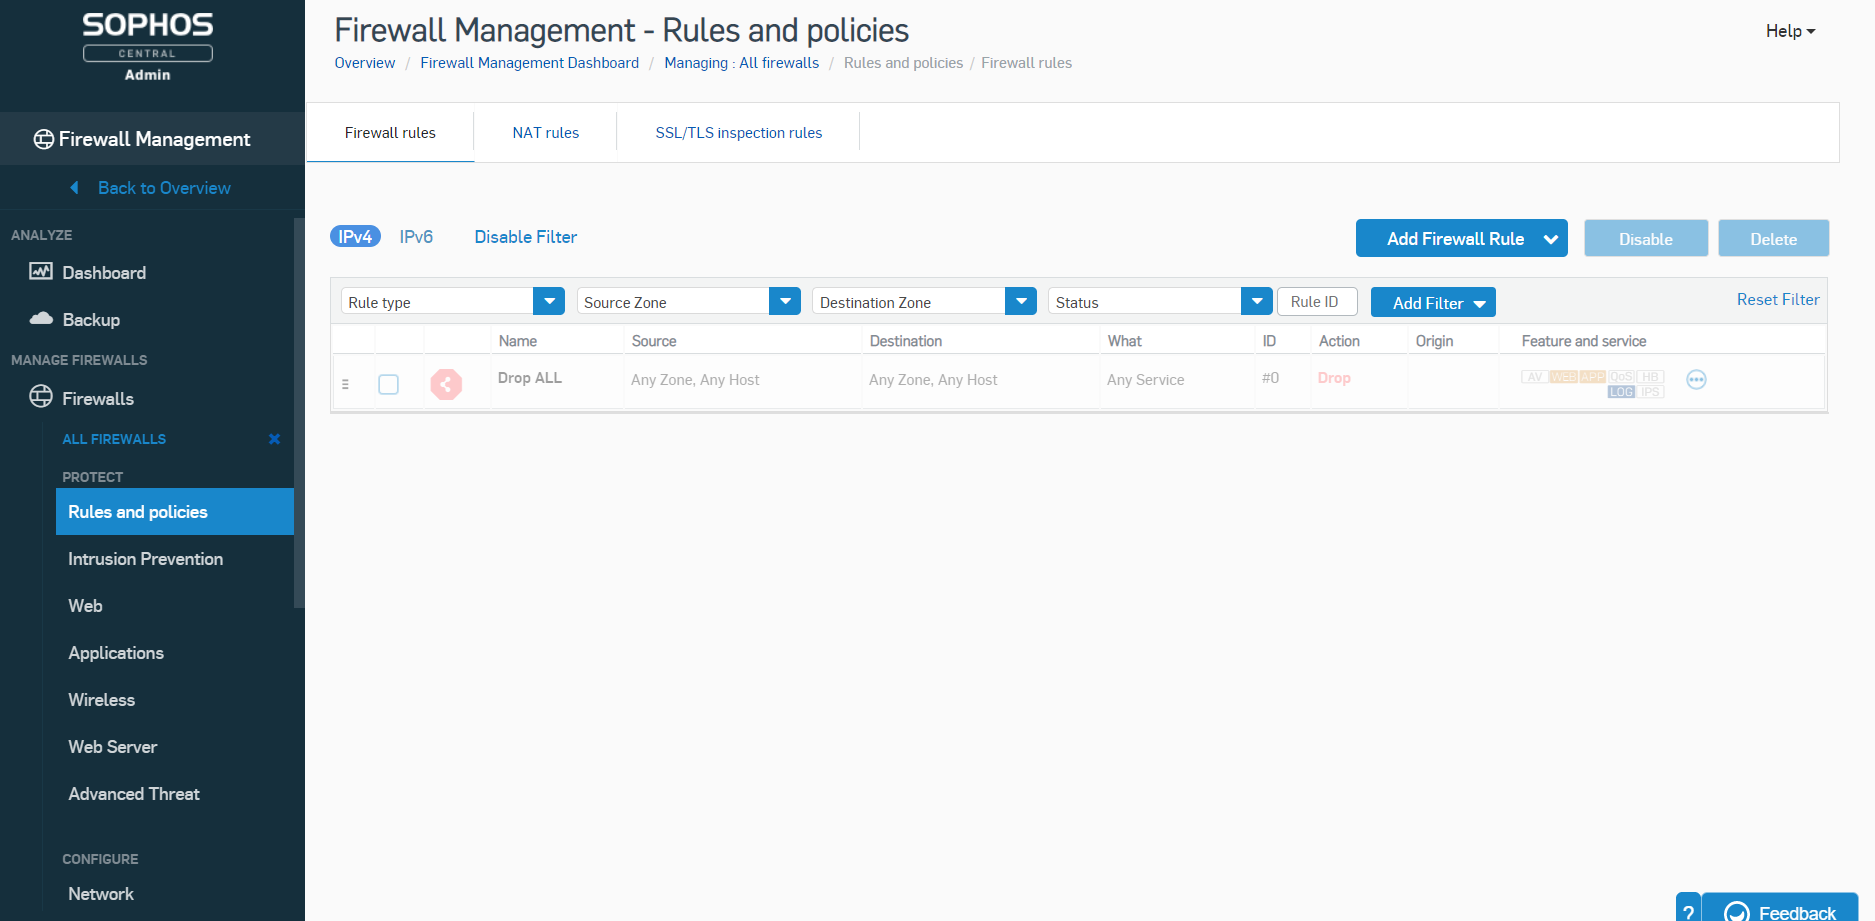 Firewall management - Rules and policies